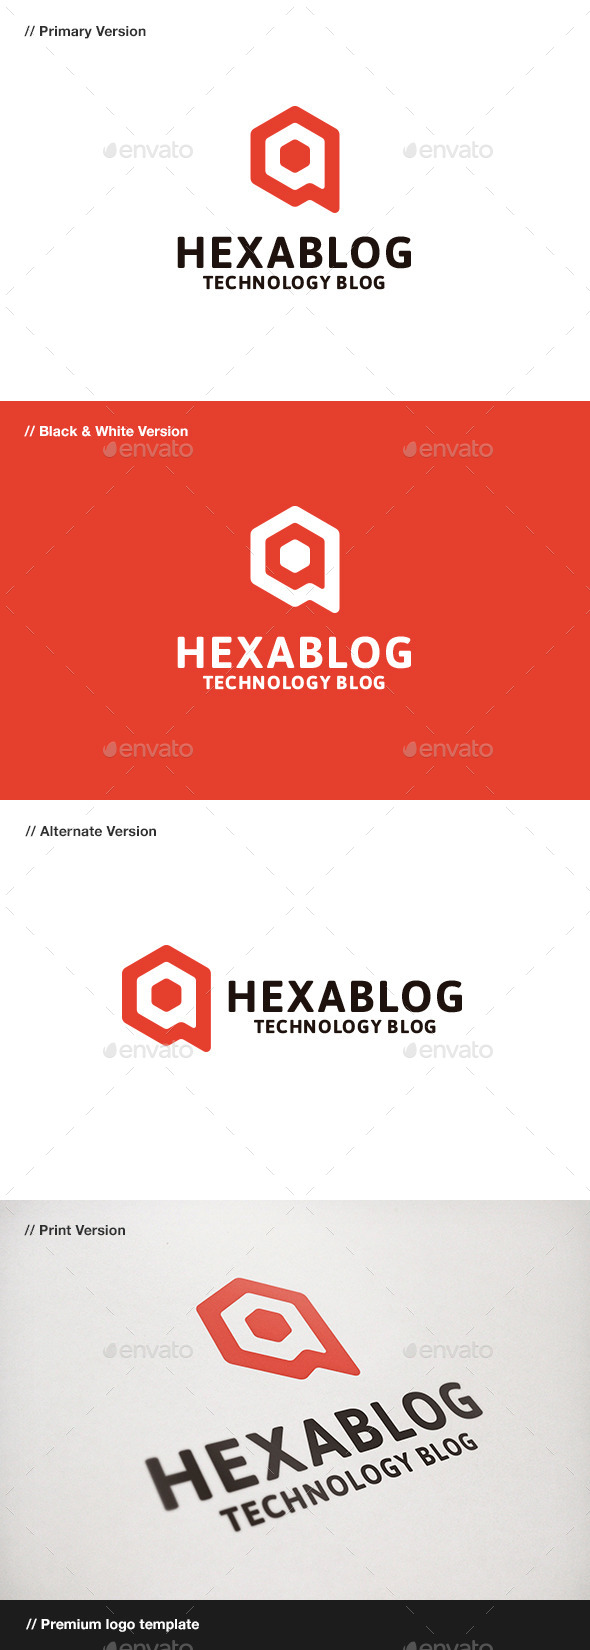 GraphicRiver Hexablog Hexagon & Blog Logo 9436242